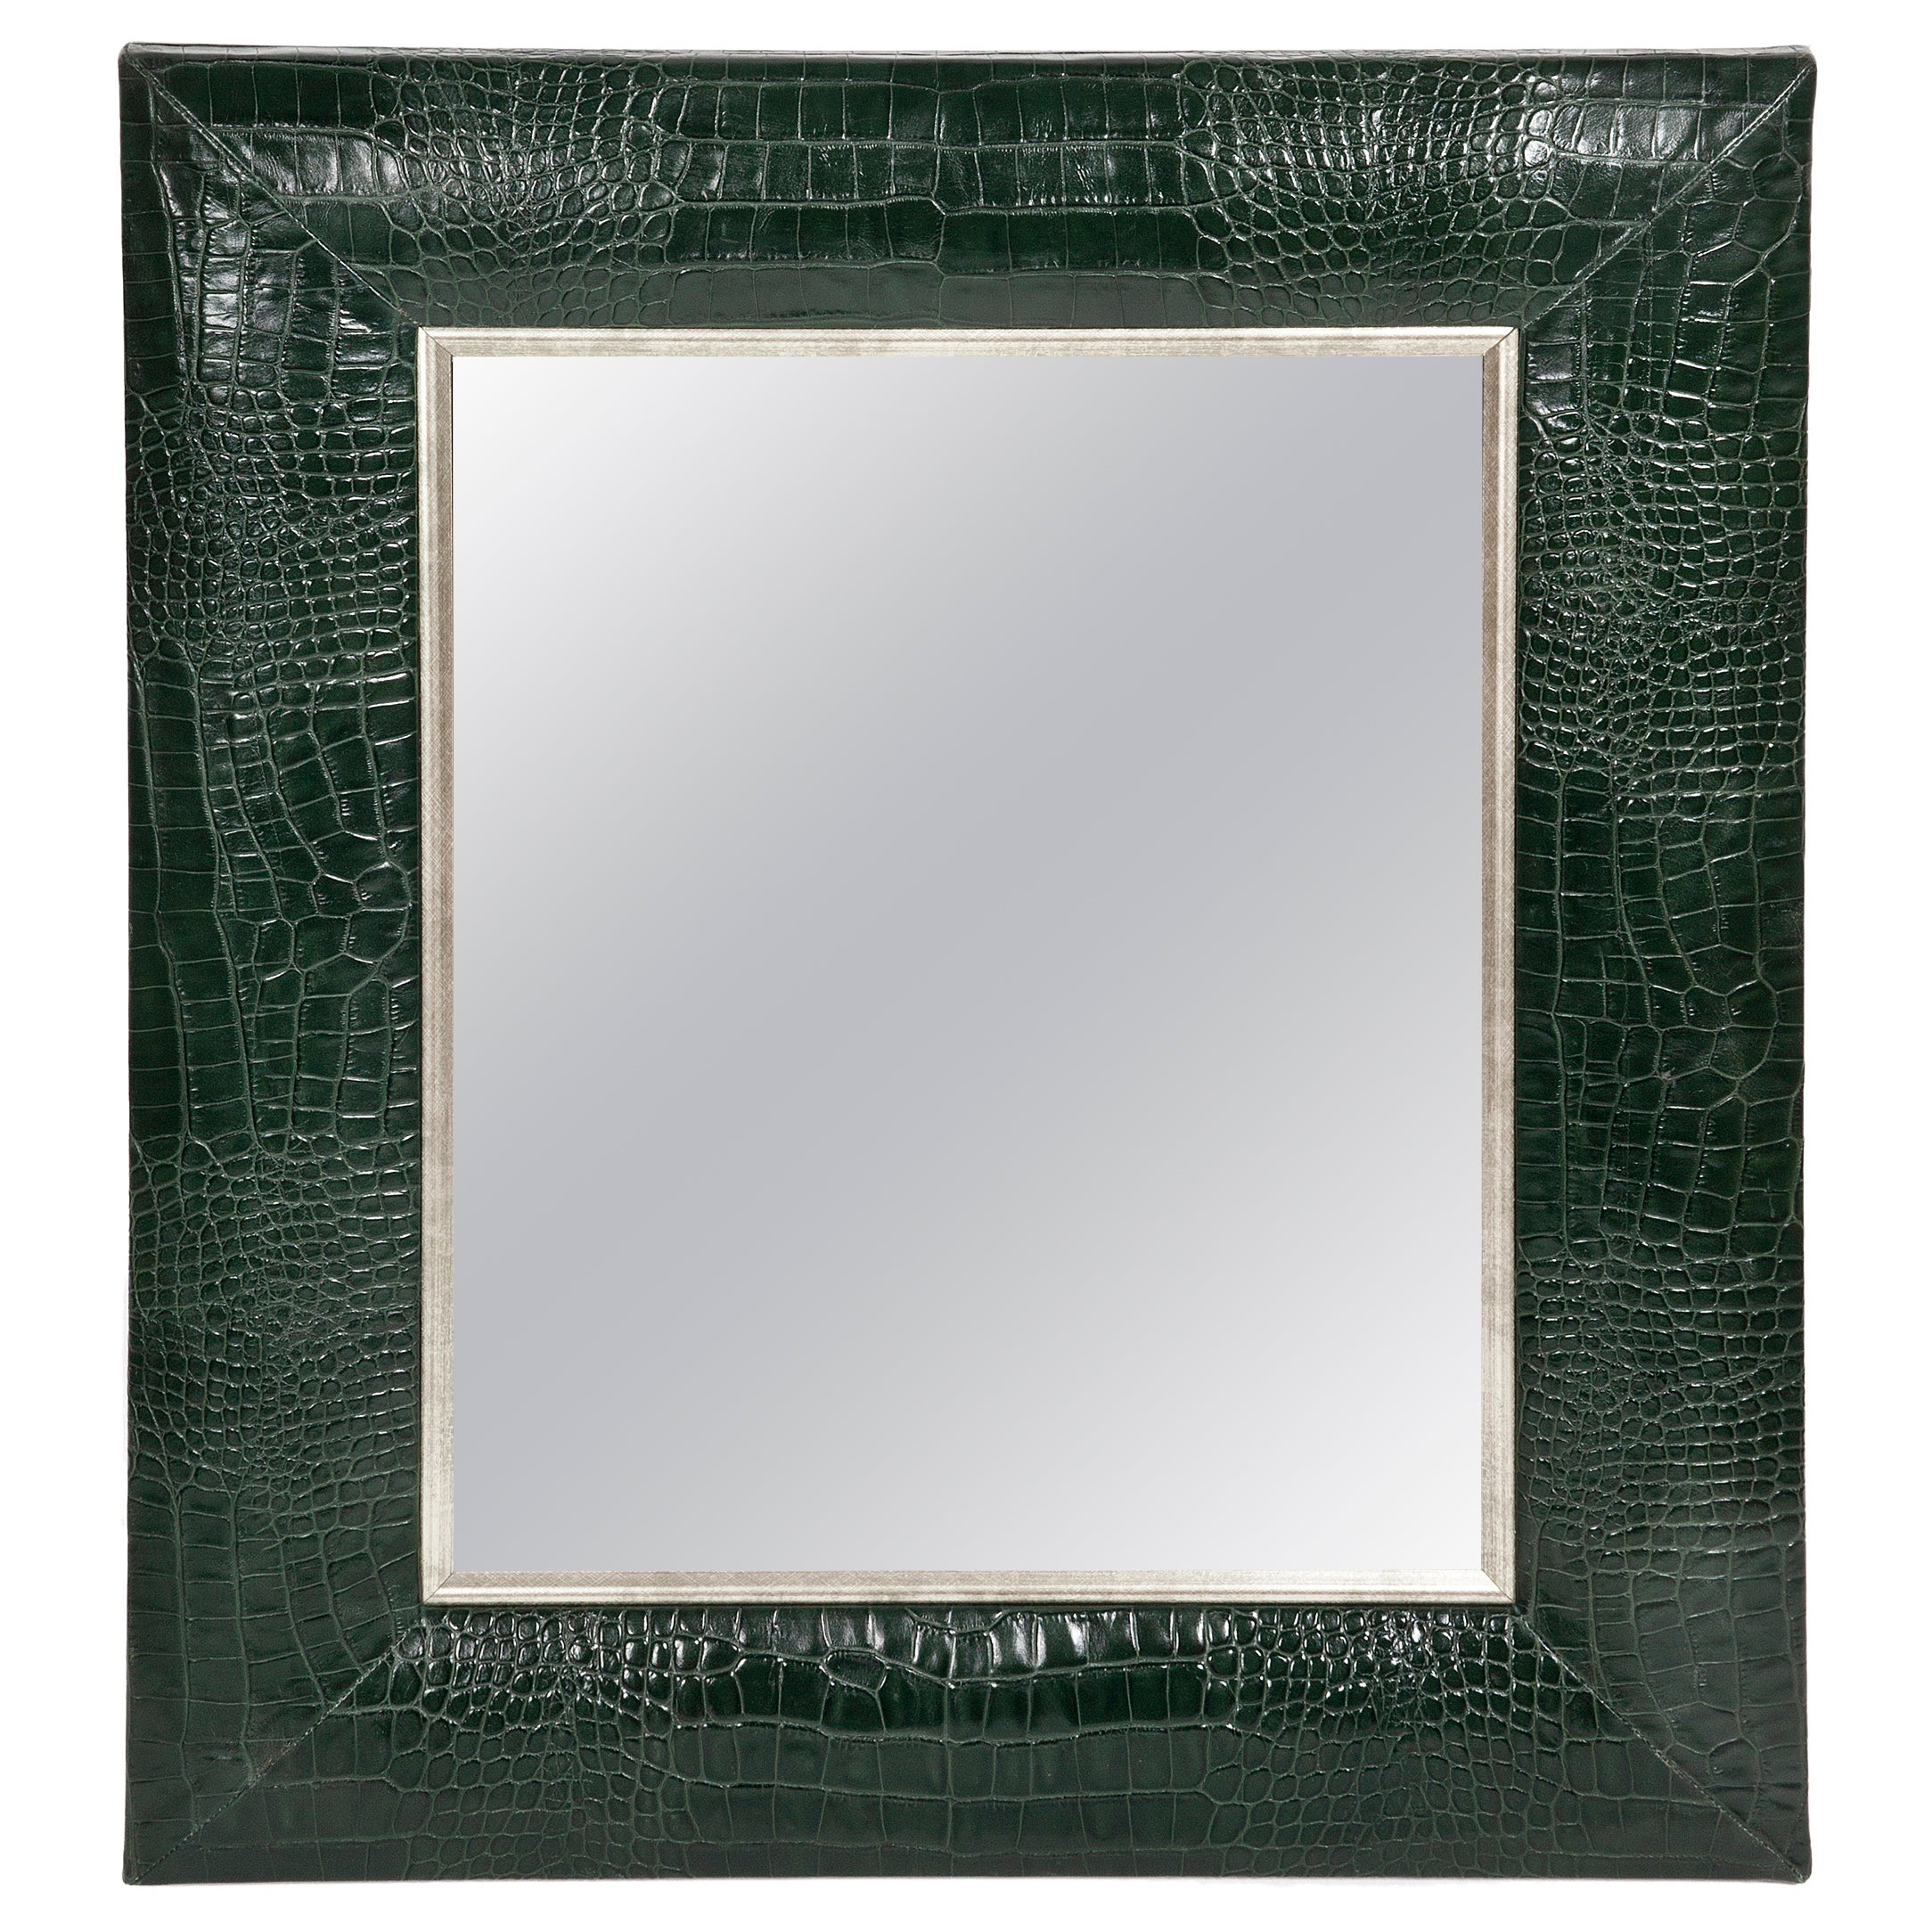 Classic Hunter Green Croc Leather Framed Mirror with Silver Details